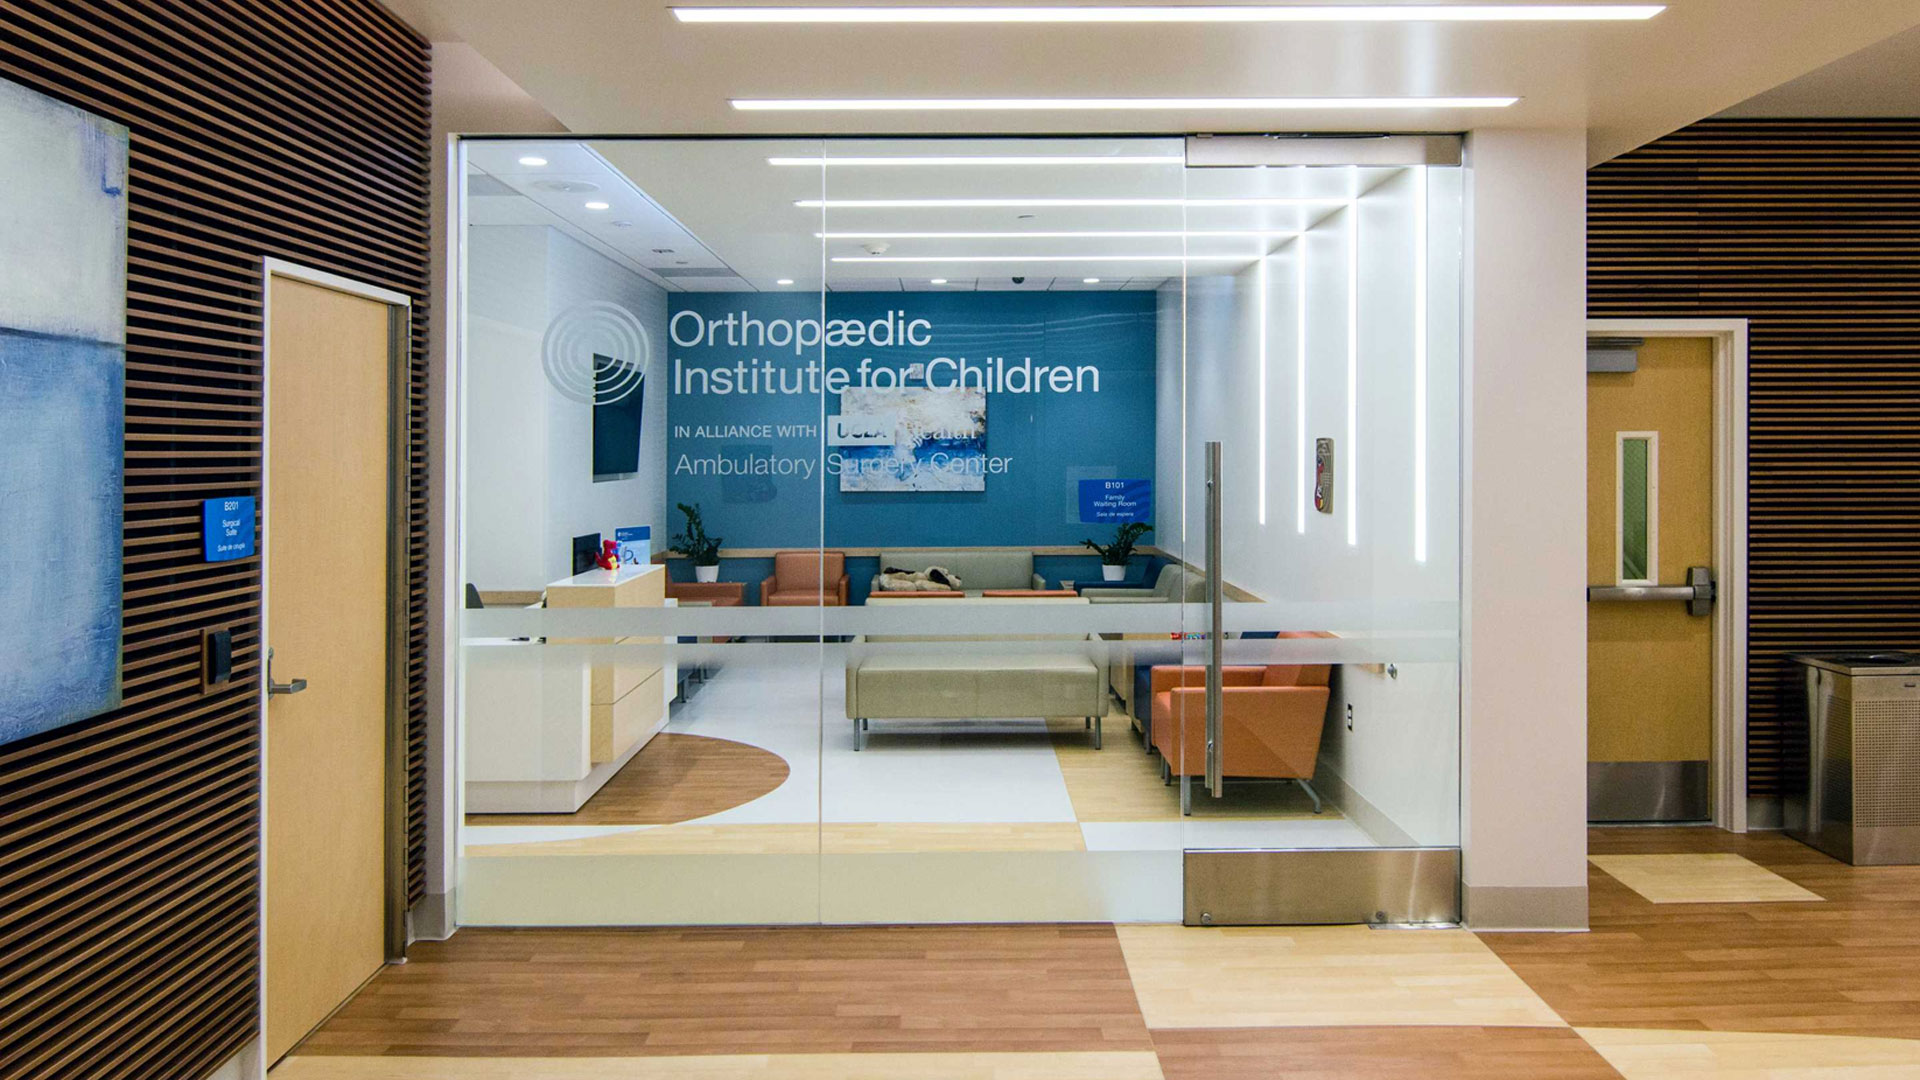 orthopaedic institute for children ambulatory surgery center